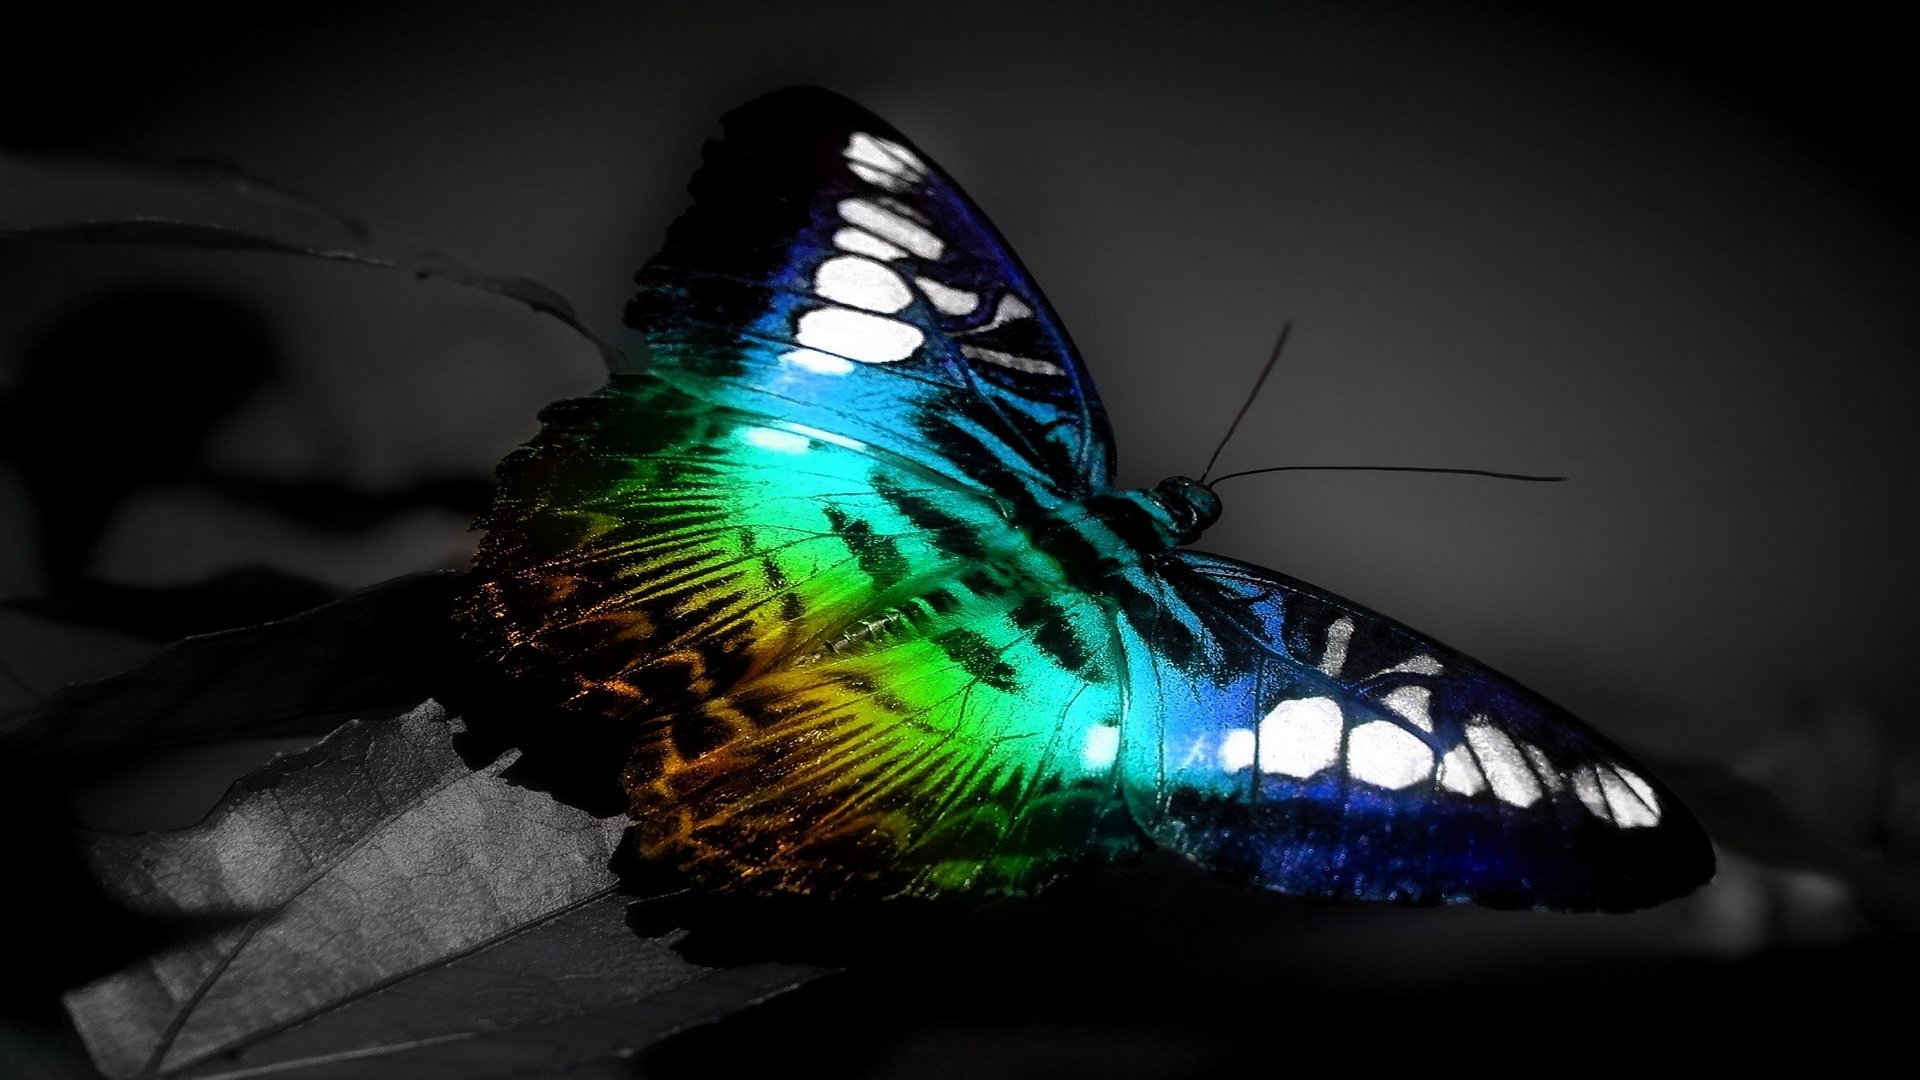 Colorful Butterfly Wallpapers 12 Cool Hd Wallpaper   Hivewallpapercom 1920x1080